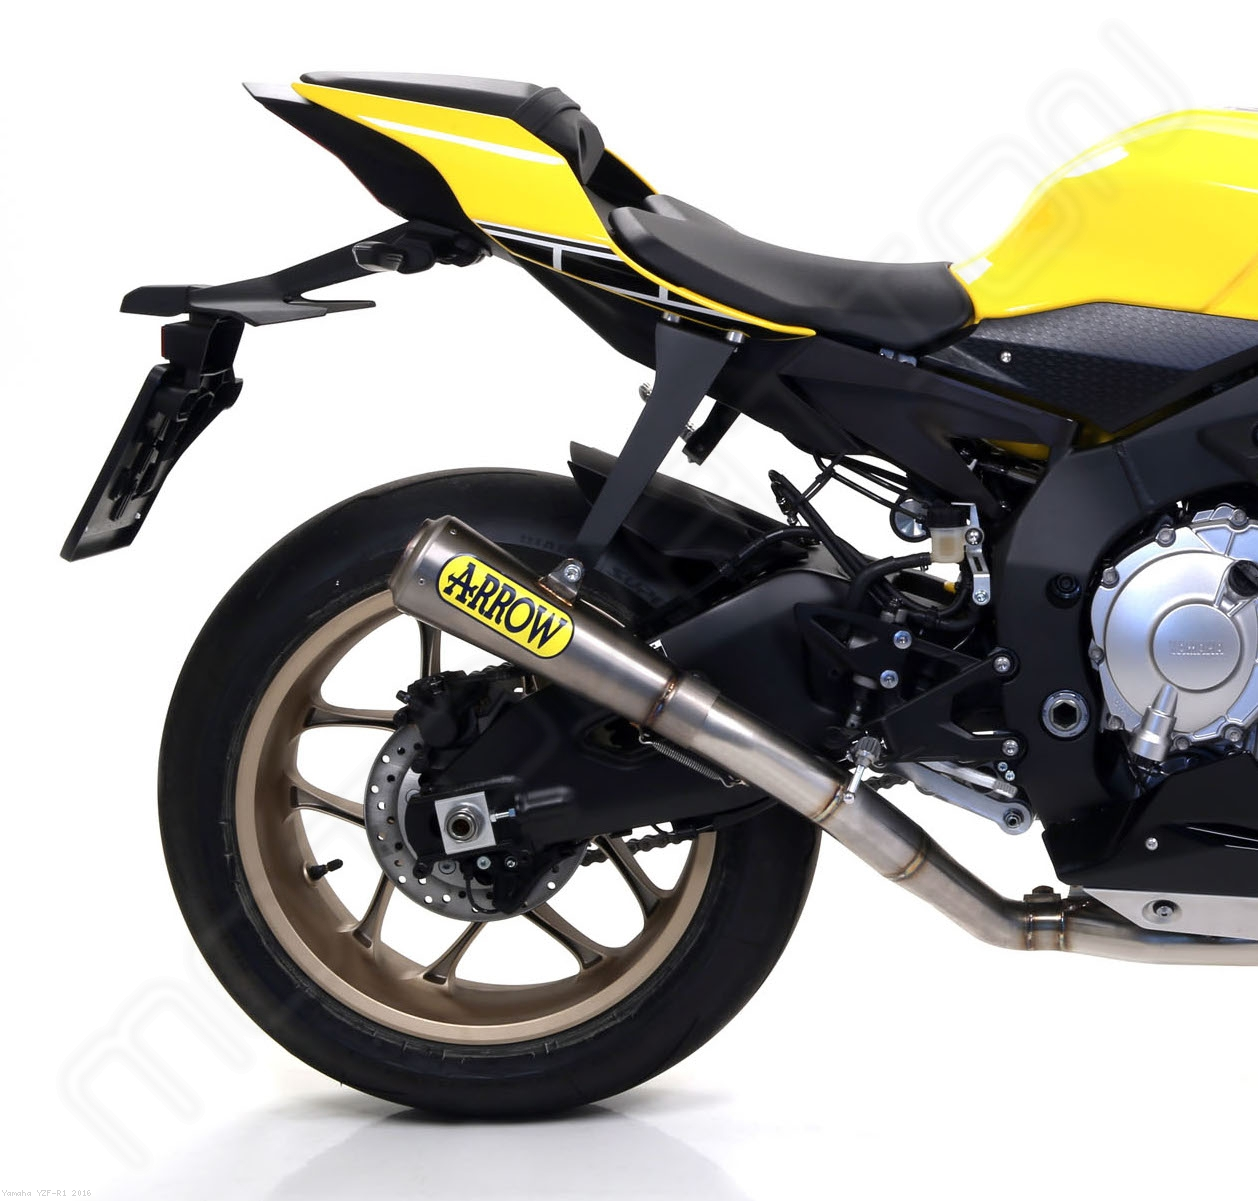 Competition evo 2 pro race full system exhaust by arrow for Yamaha exhaust systems